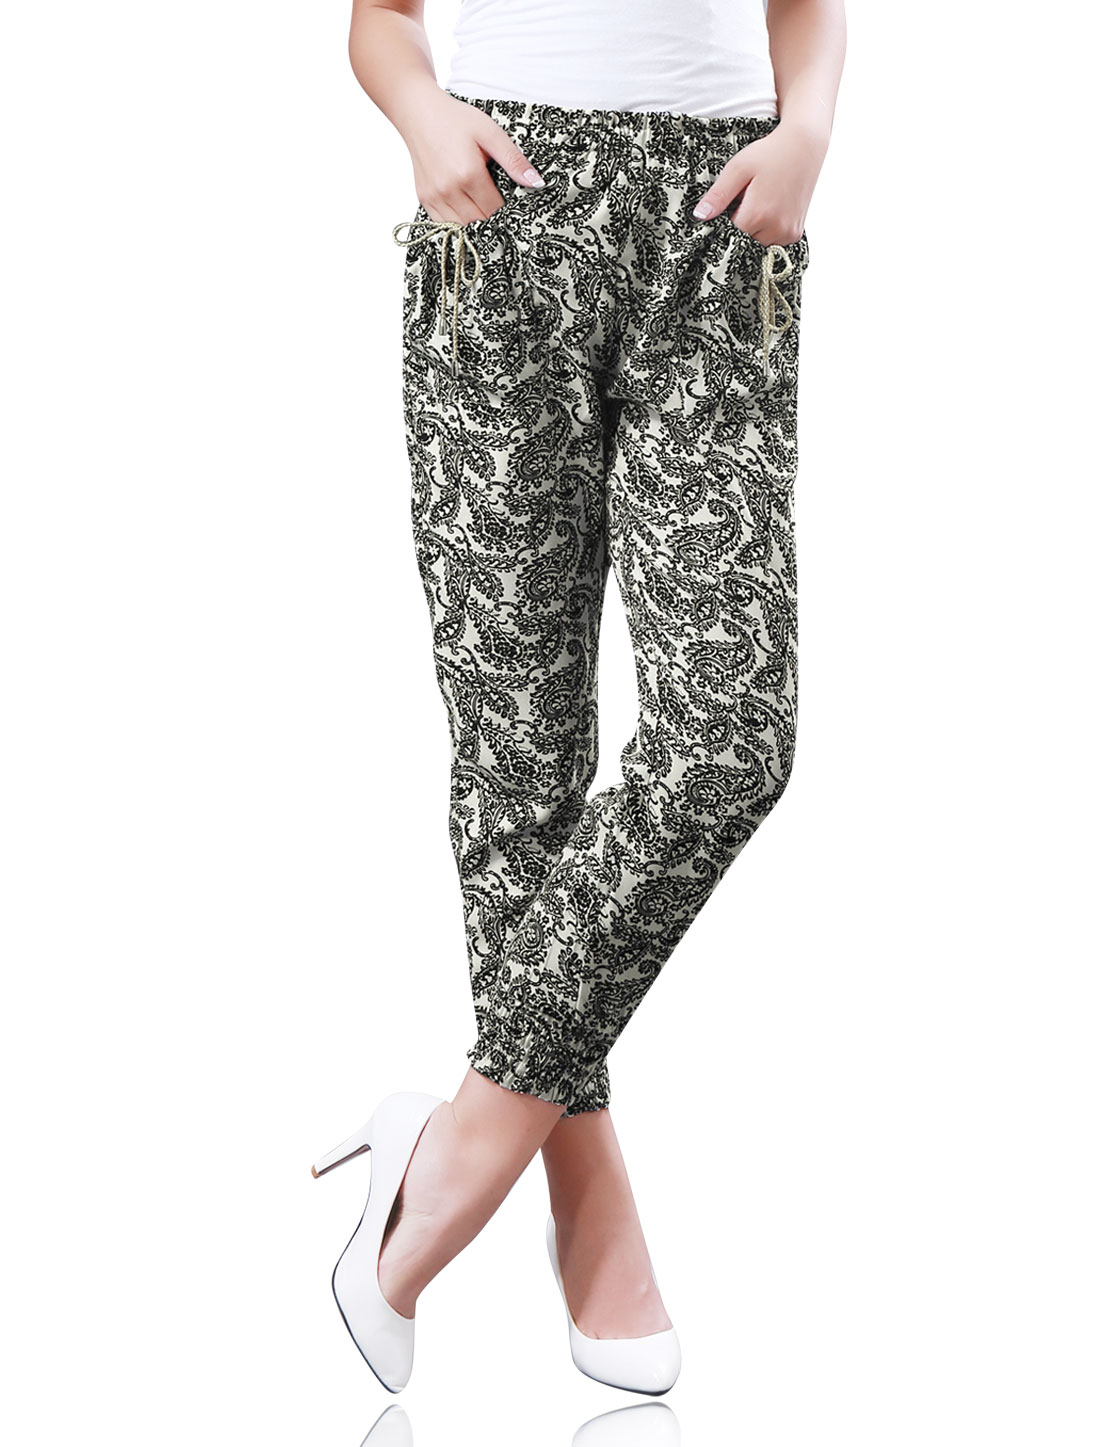 Women All-over Floral Paisleys Print Drawstring Front Pockets Jogger Pants Black Beige M